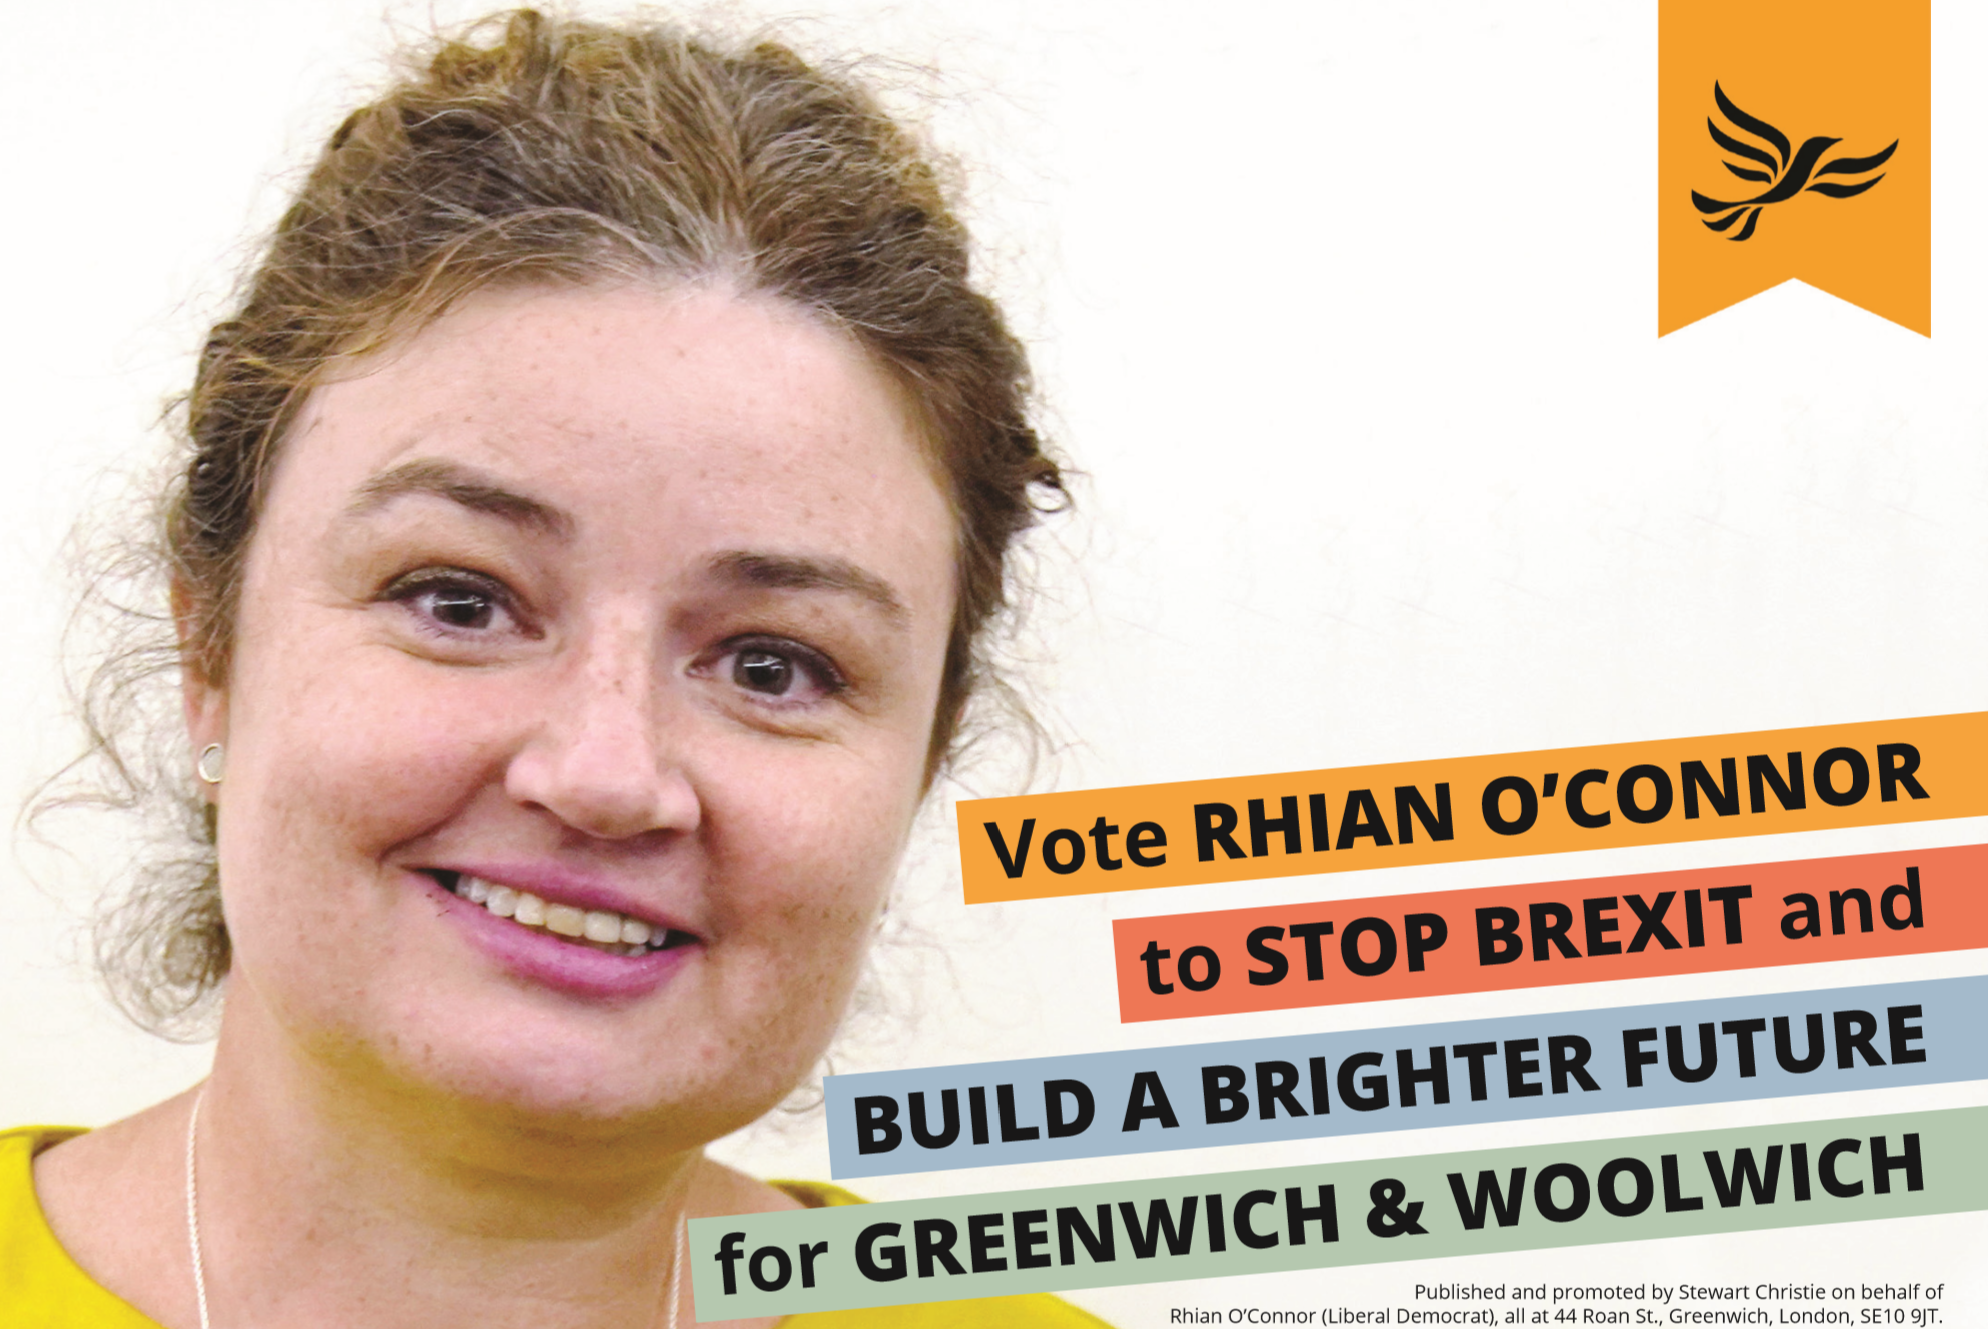 How we can Stop Brexit in Greenwich & Woolwich